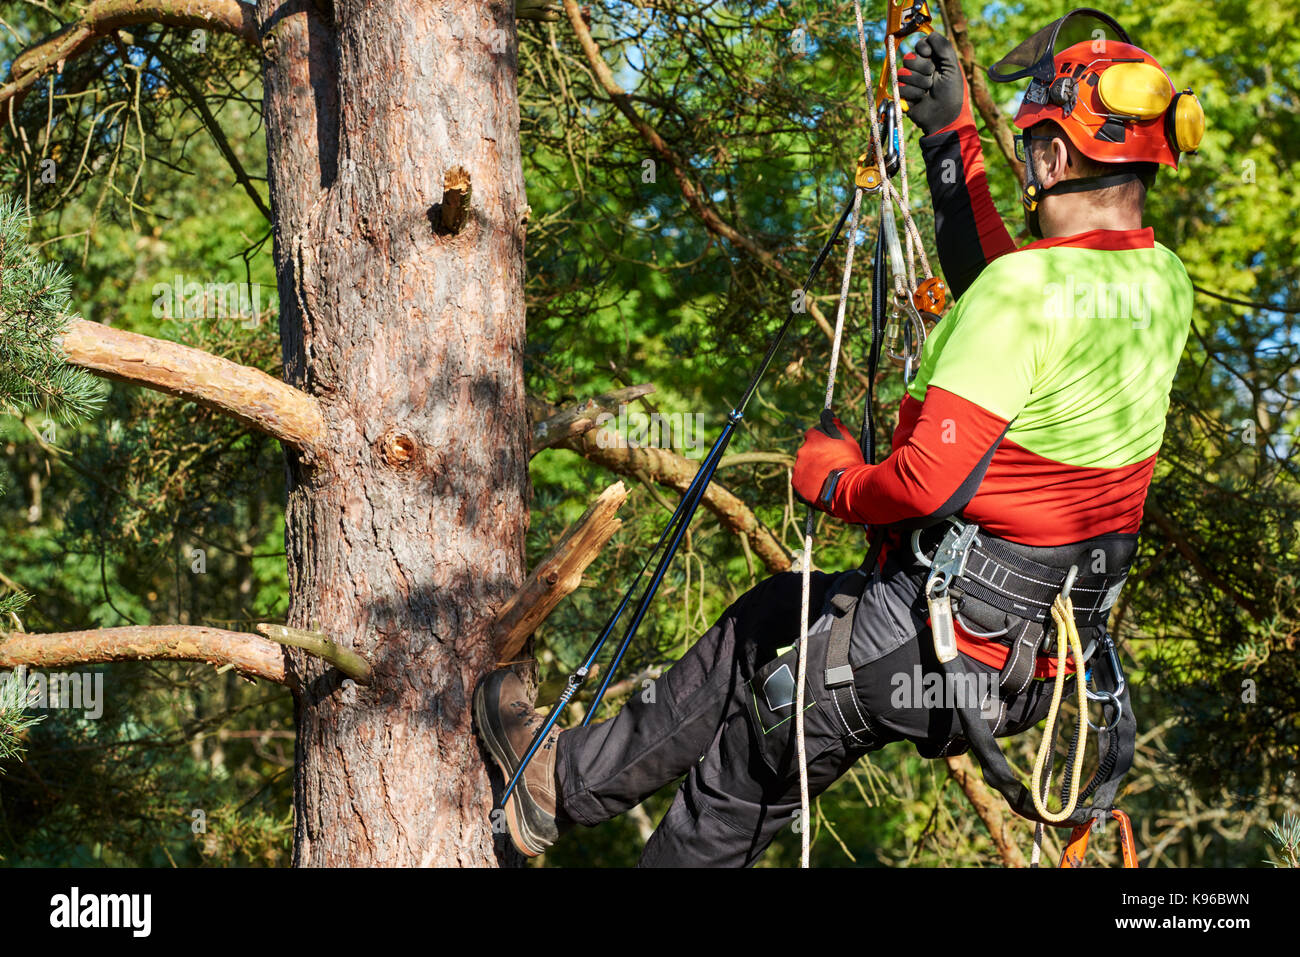 Lumberjack with saw and harness climbing a tree - Stock Image